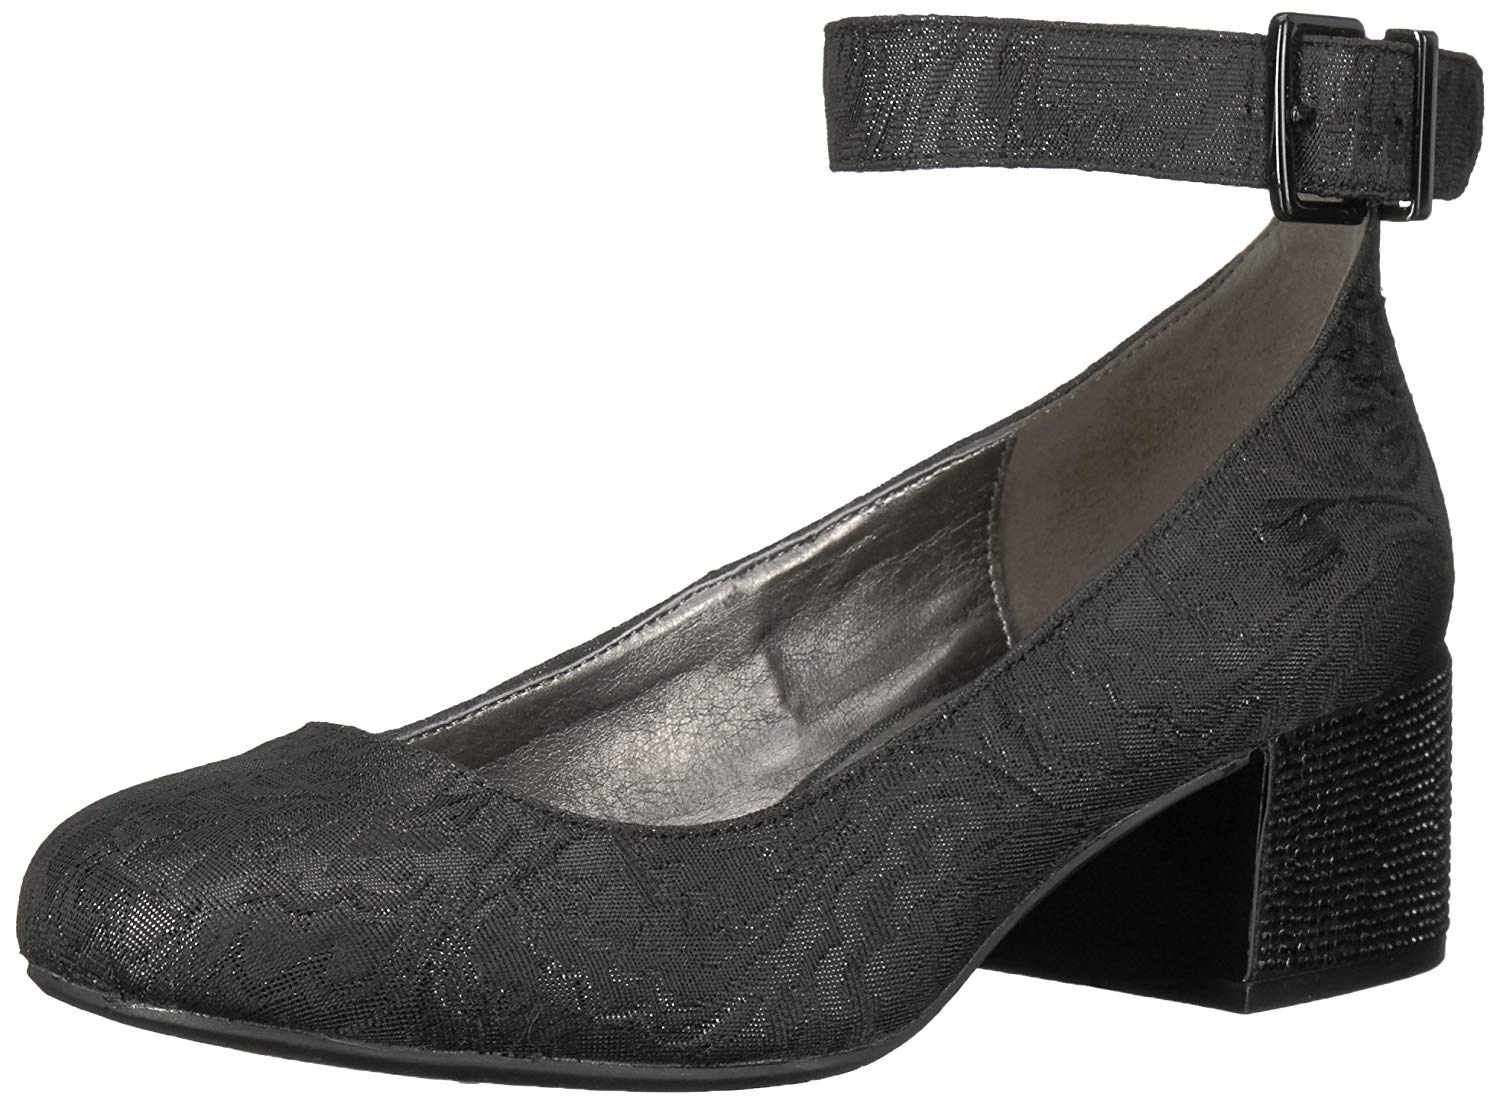 Kenneth Cole REACTION Femmes Chaussures